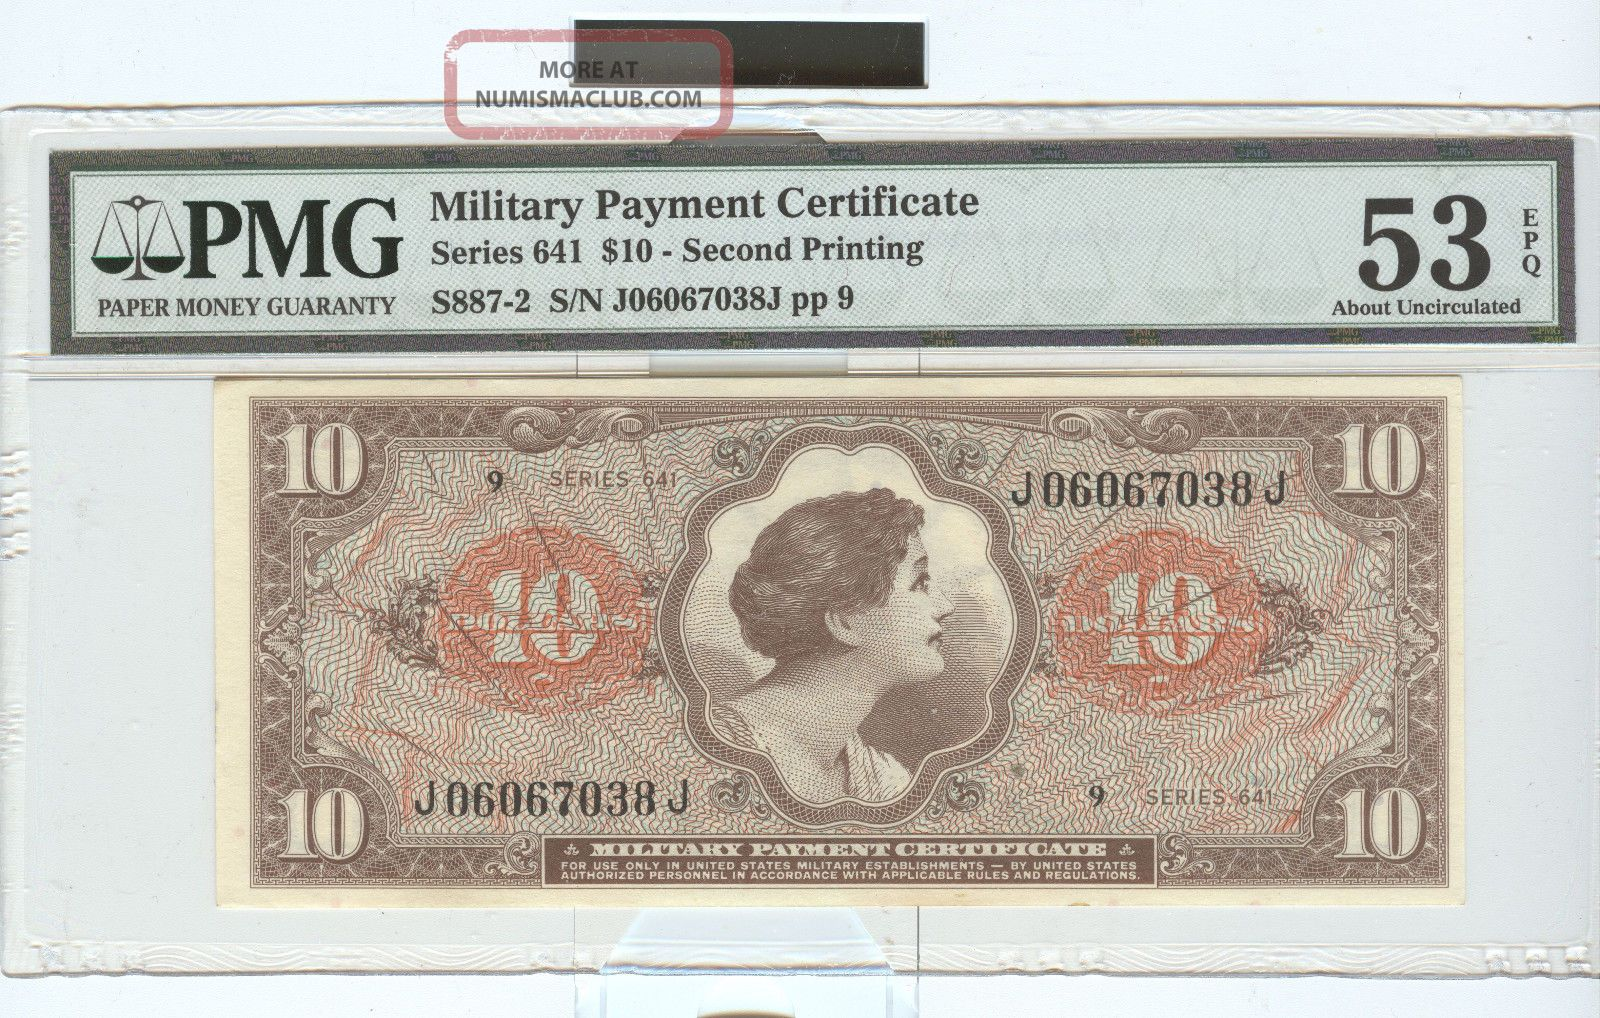 Series 641 $10 Military Payment Certificate Paper Money: US photo